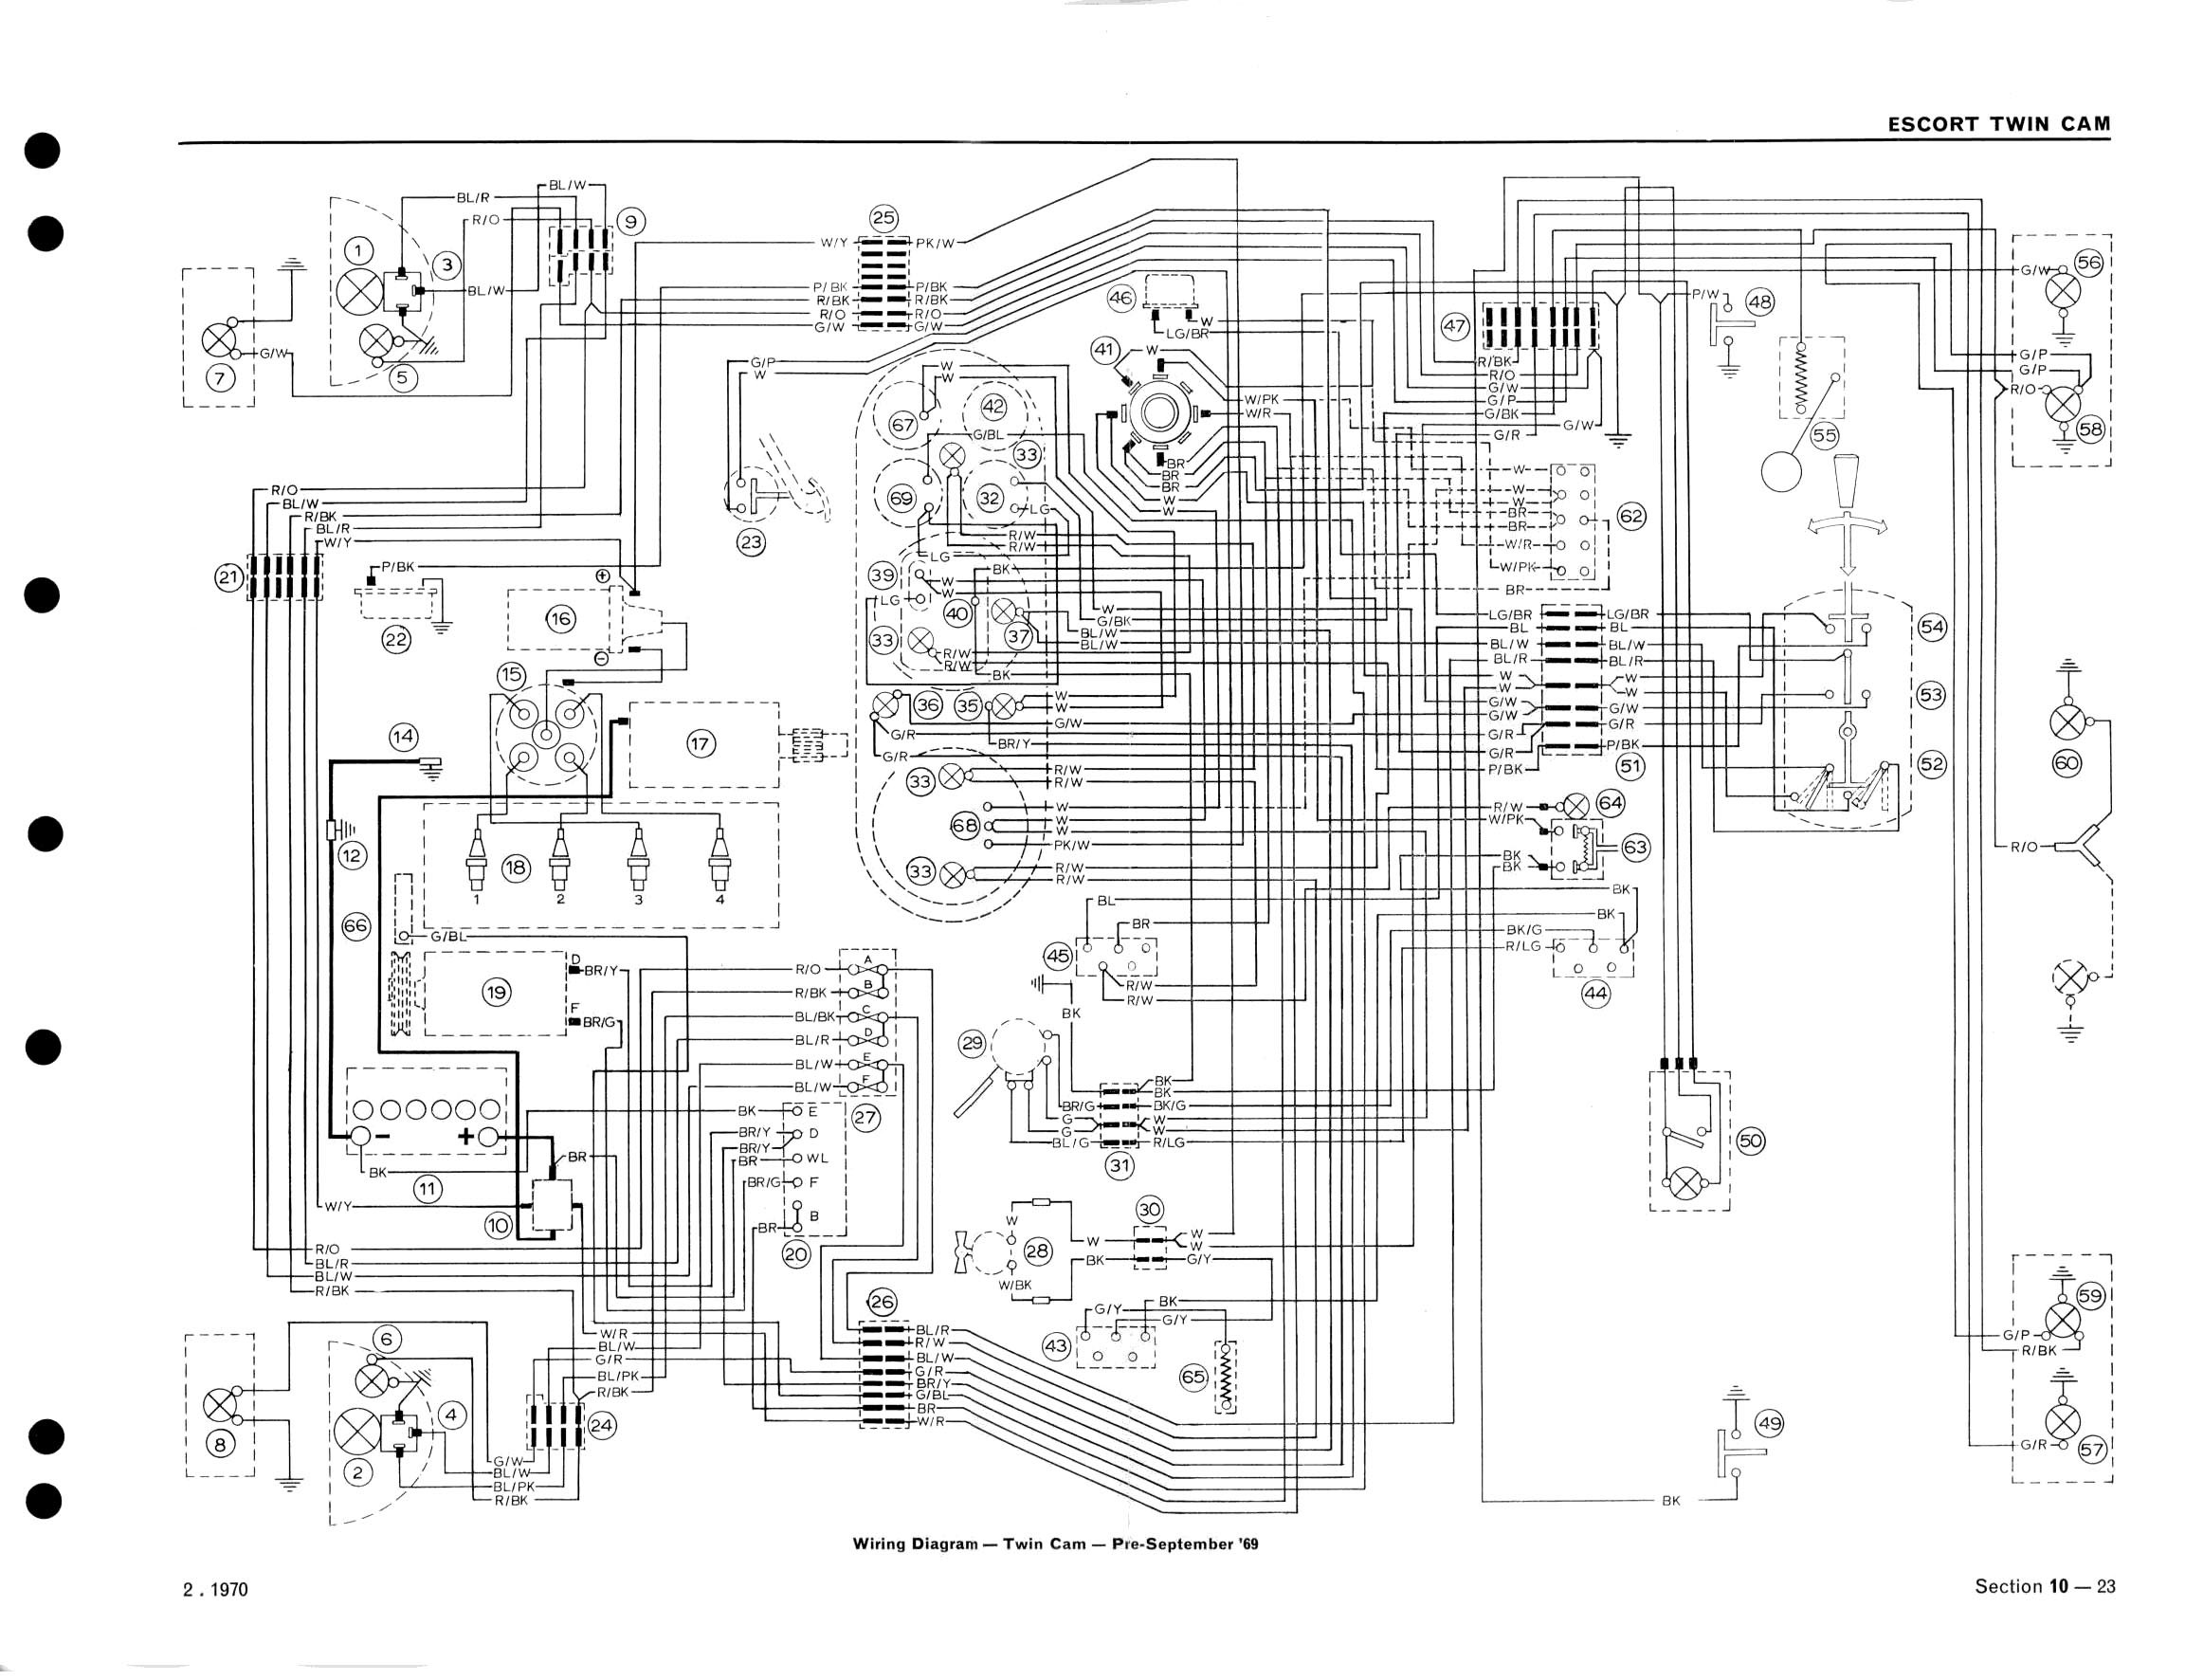 1998 Ford Contour Fuse Box Location Control Wiring Diagram For 1997 99 Zx2 U2022 Free 98